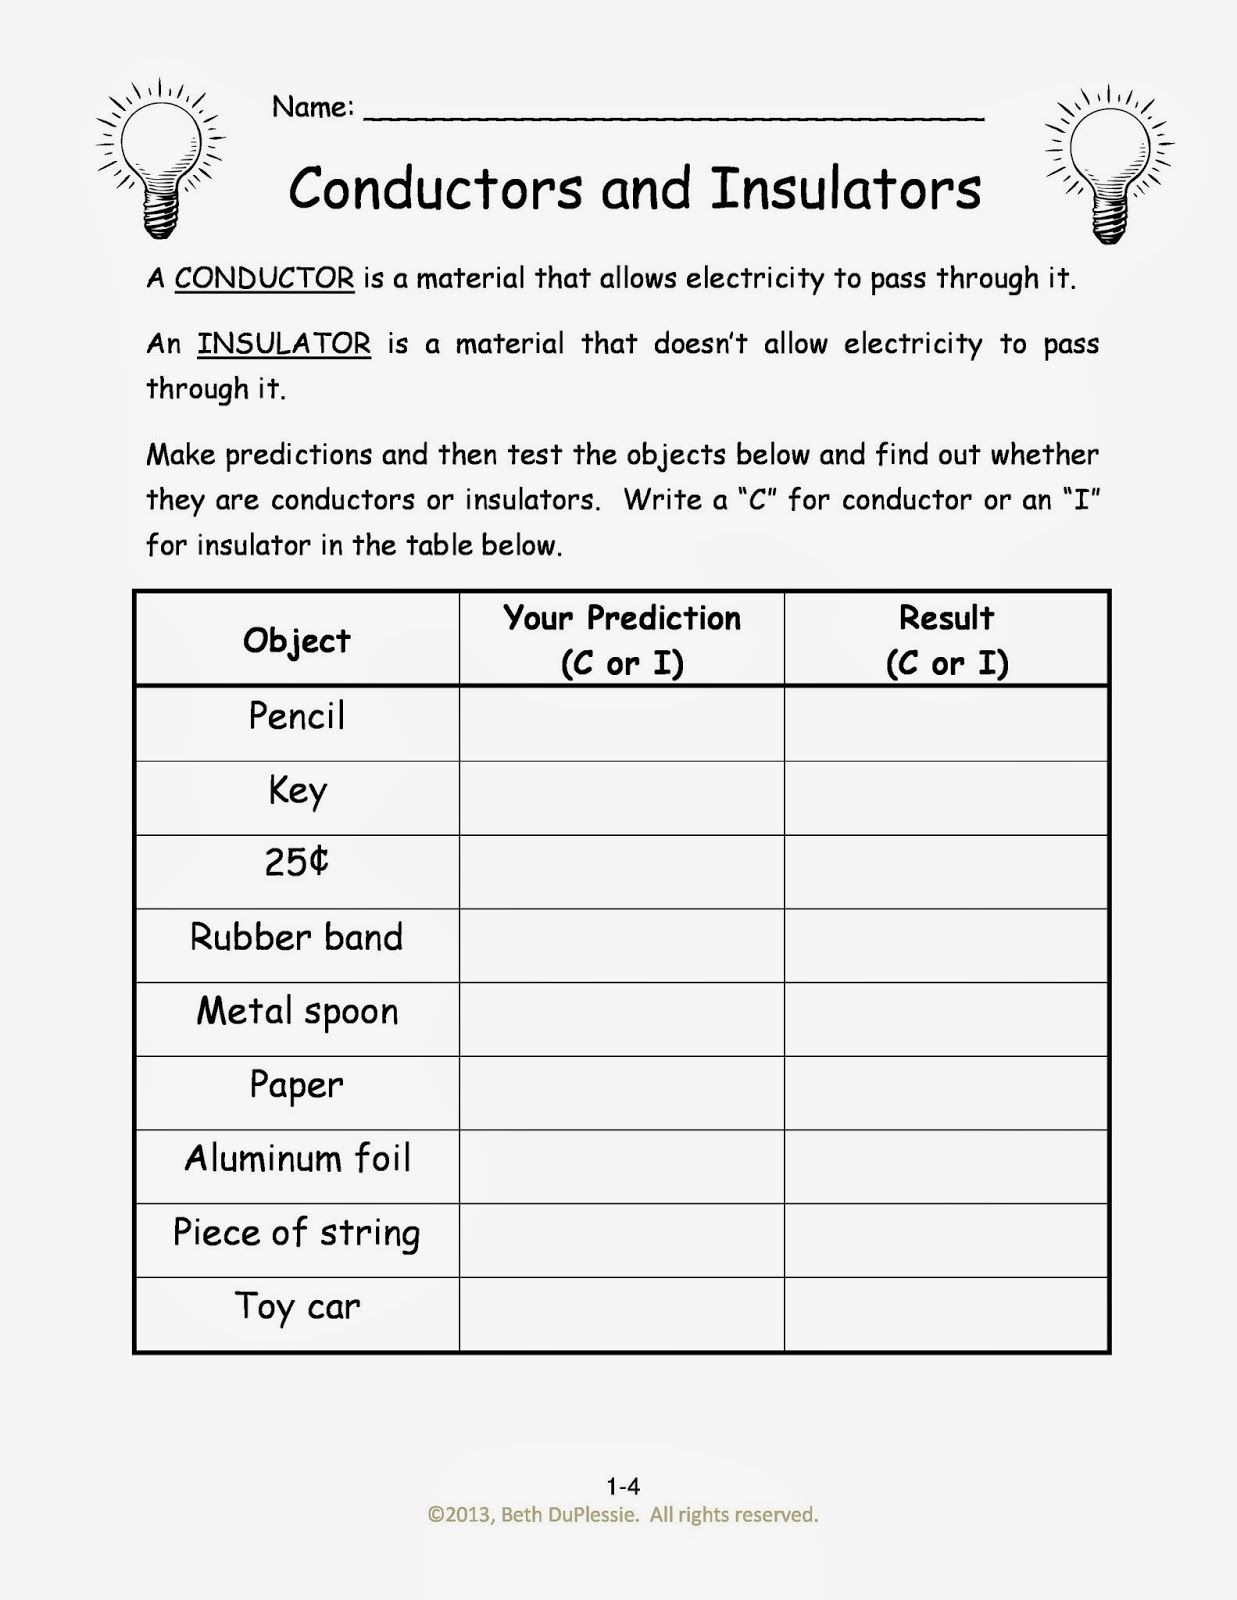 Worksheets Electricity Worksheet week 6 electrical engineering electricity homeschool an insulator is a material that doesnt allow to pass through it